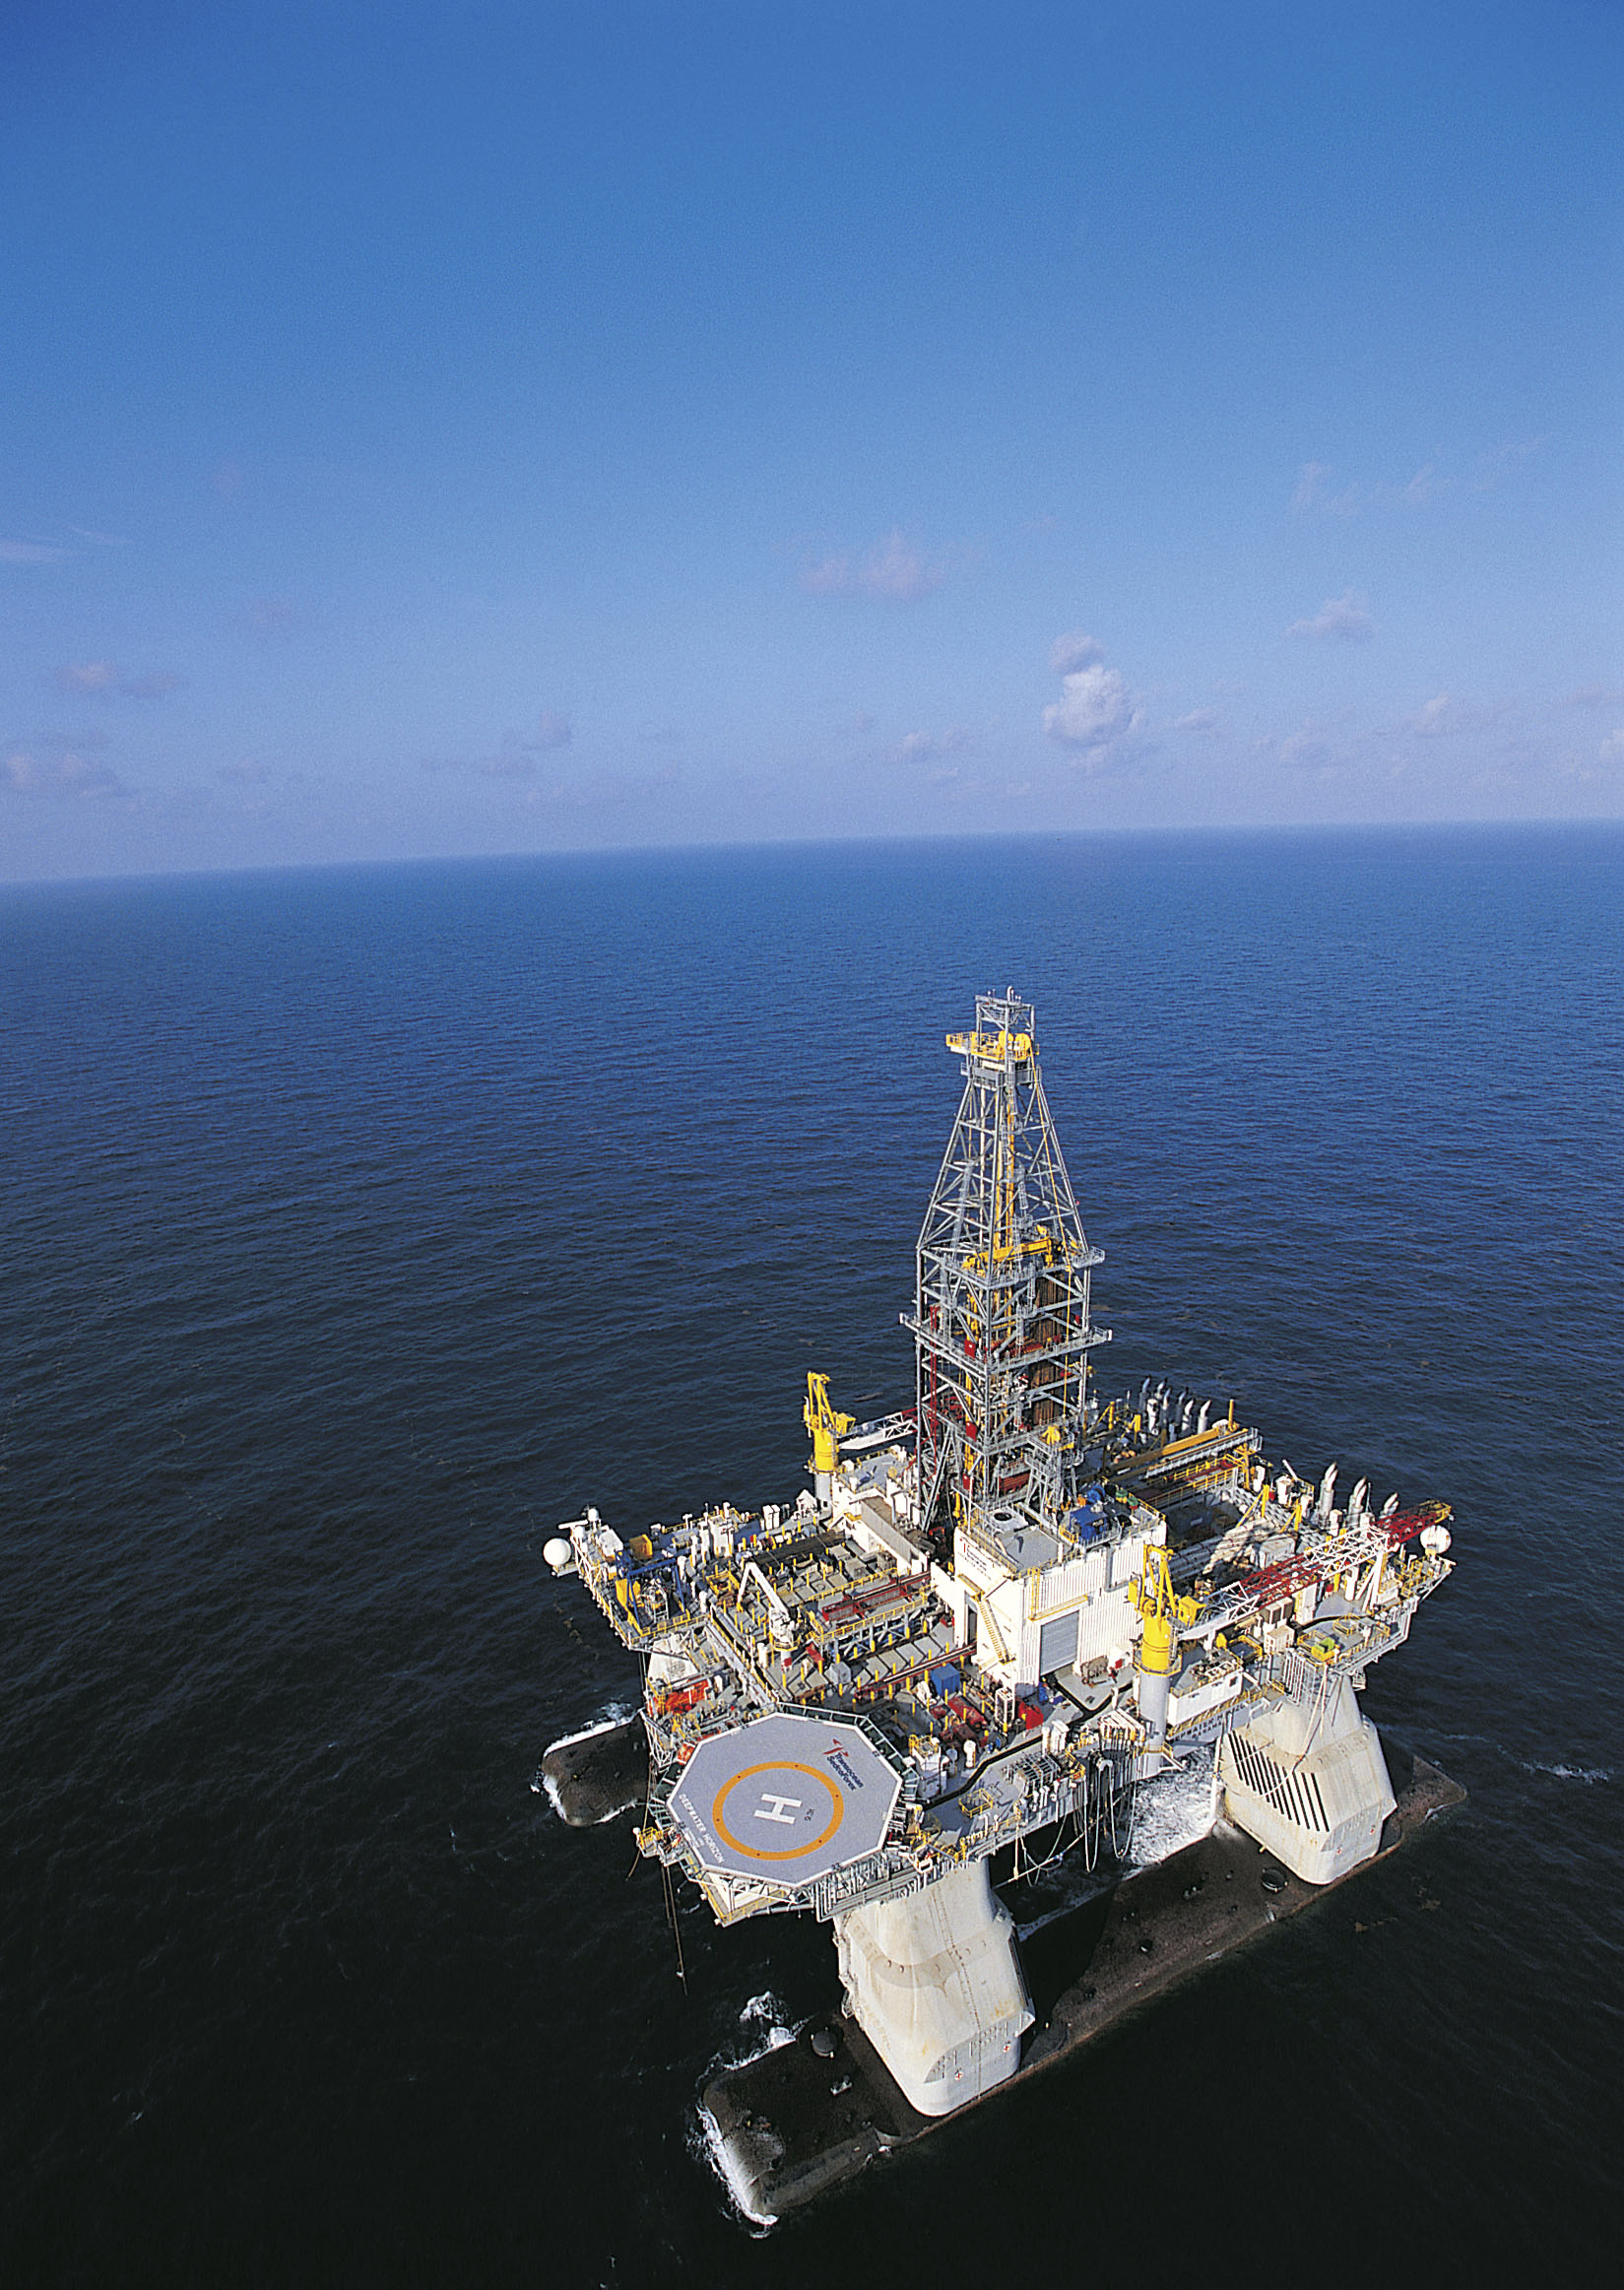 In this undated file photo released by Transocean, the ultra-deepwater semi-submersible rig Deepwater Horizon is shown operating in the U.S. Gulf of M...